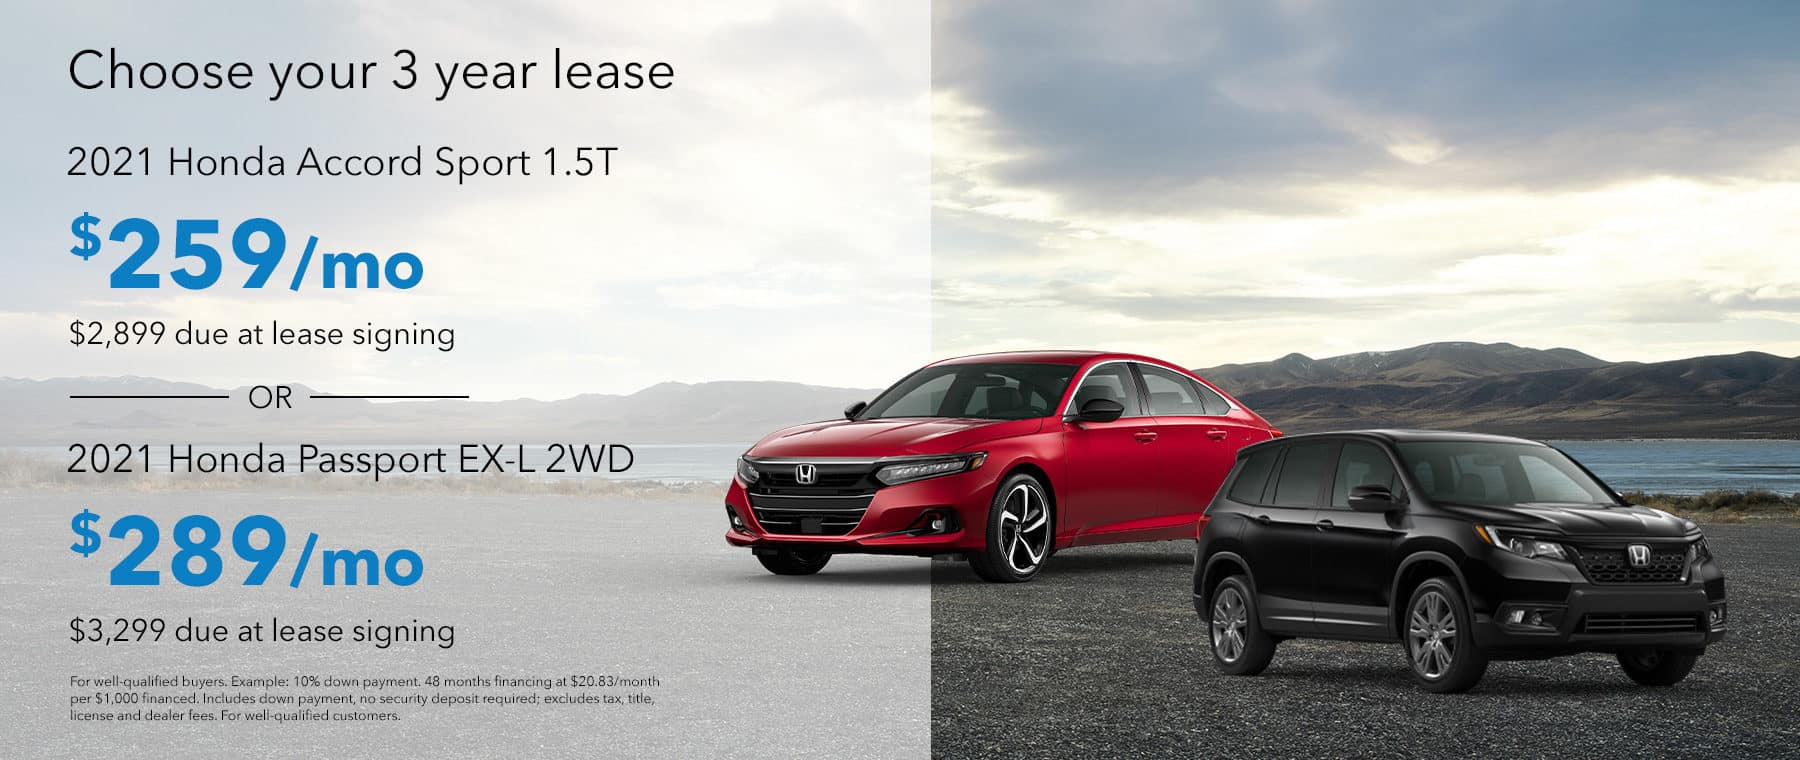 Choose Your 3 Year Lease Between the 2022 Honda Accord and the 2022 Honda Passport